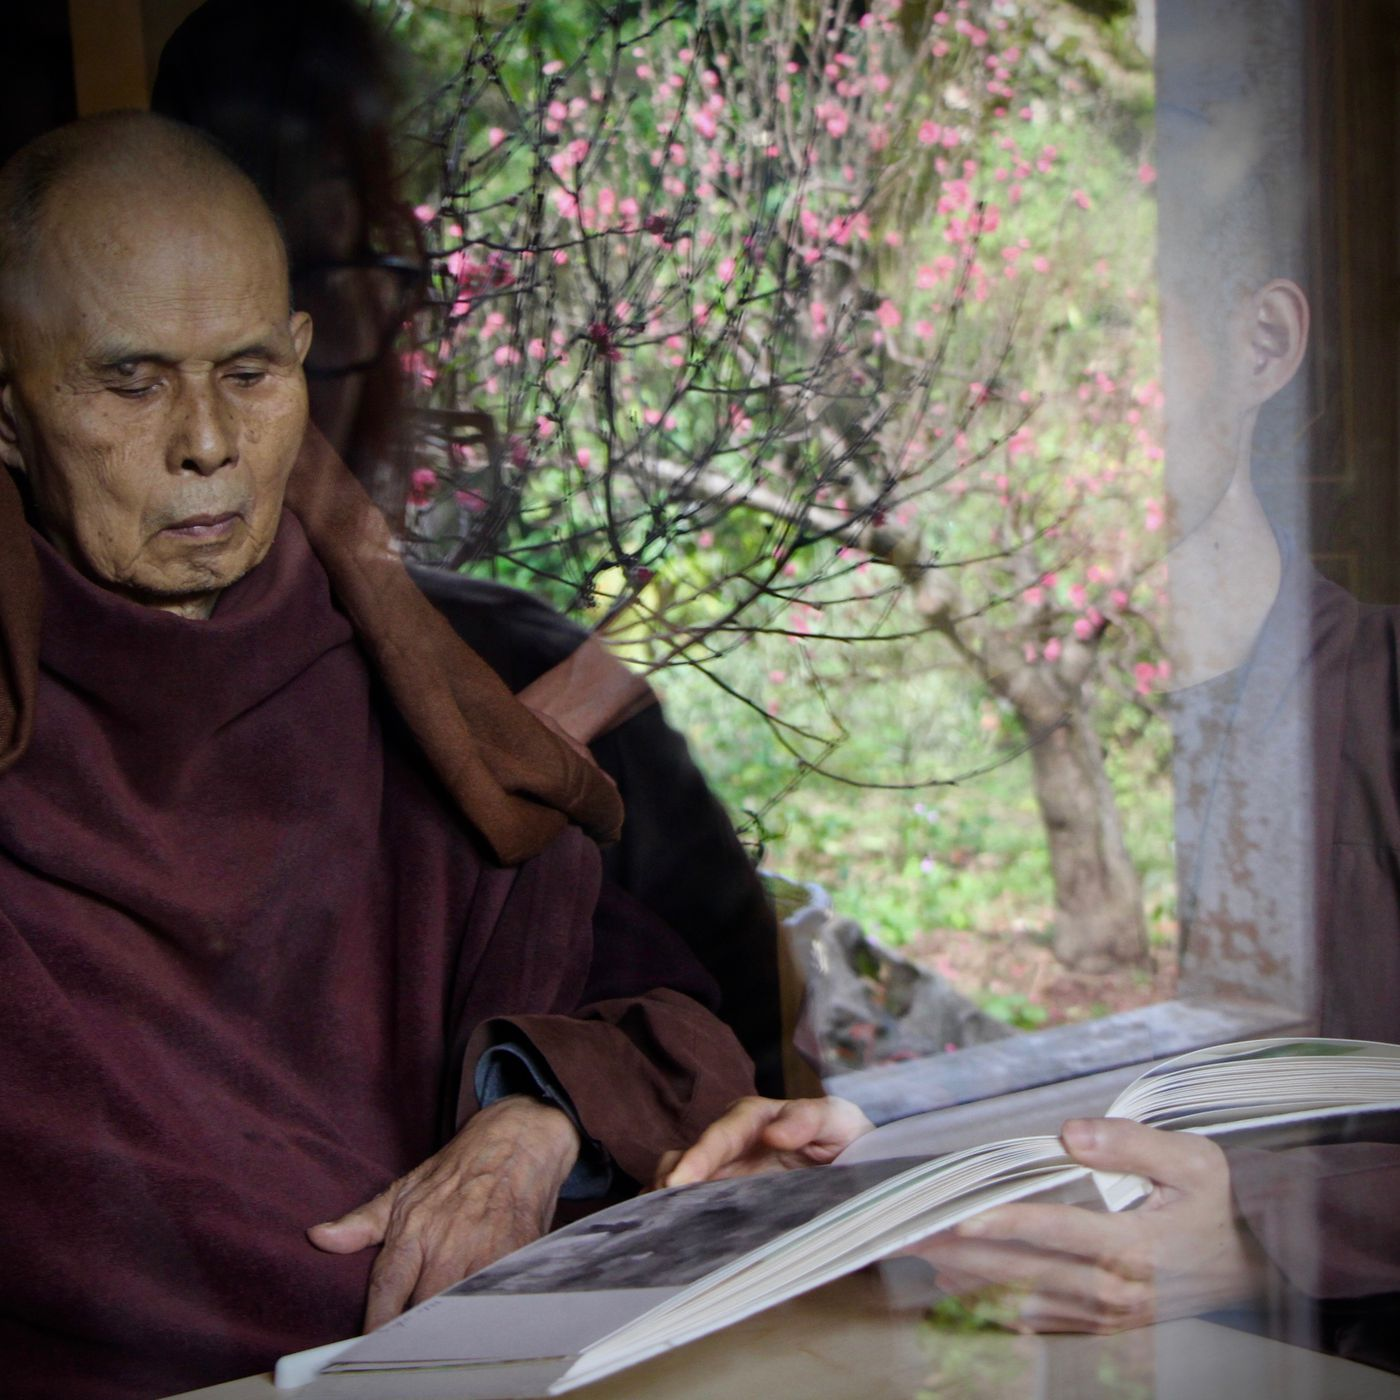 Thich Nhat Hanh's final mindfulness lesson: how to die peacefully - Vox